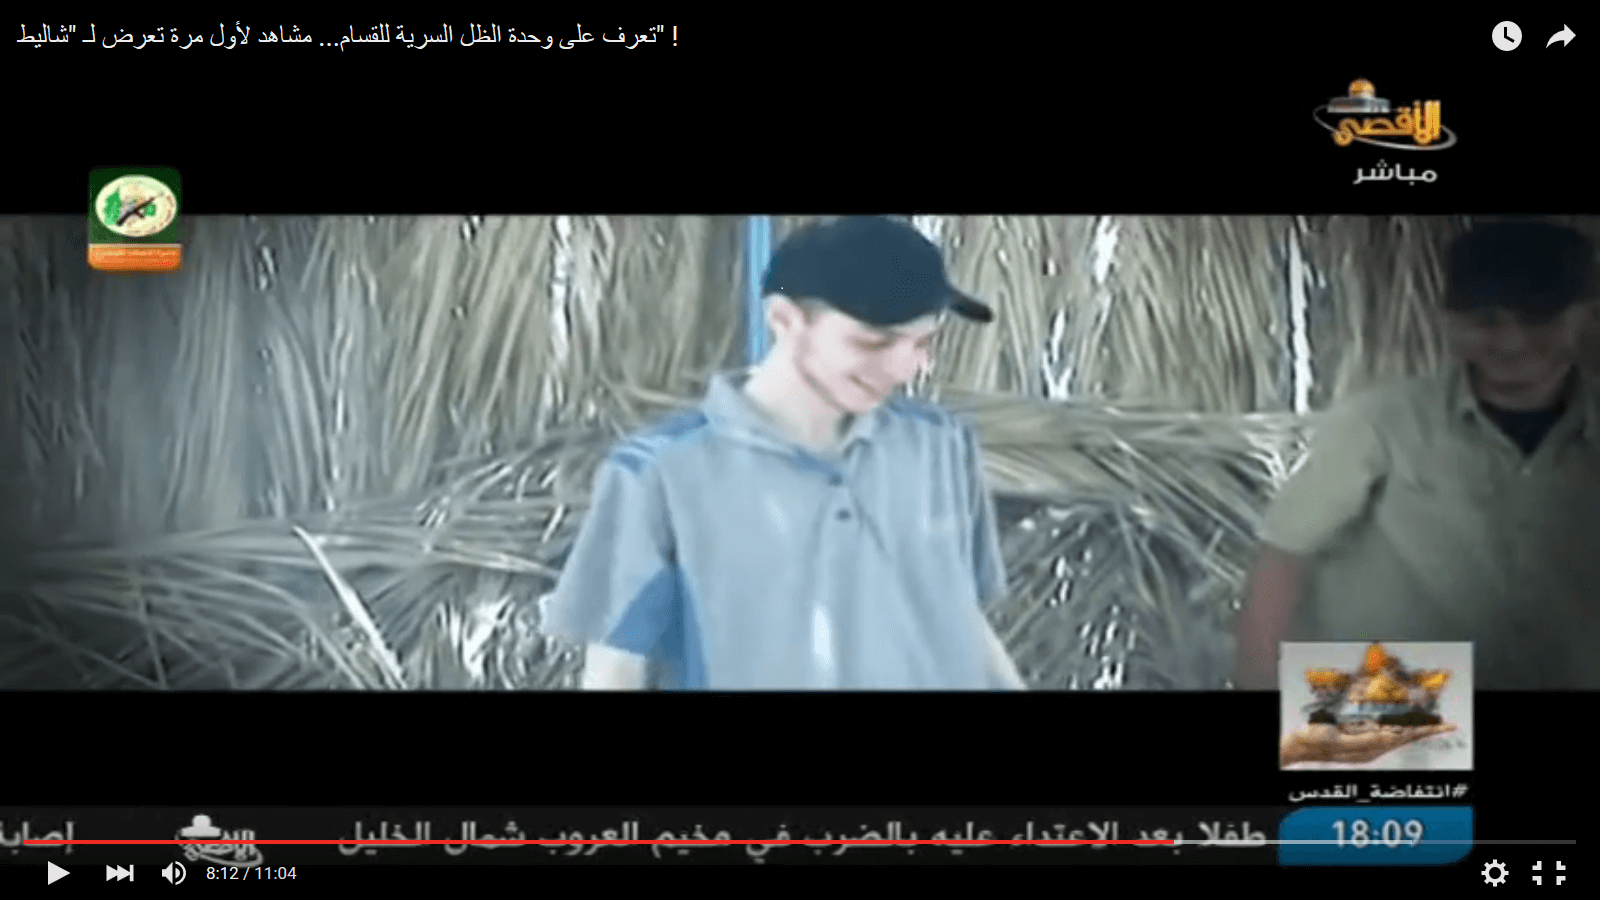 Gilad Shalit then a prisoner at an open-air barbecue in Hamas Brigades video